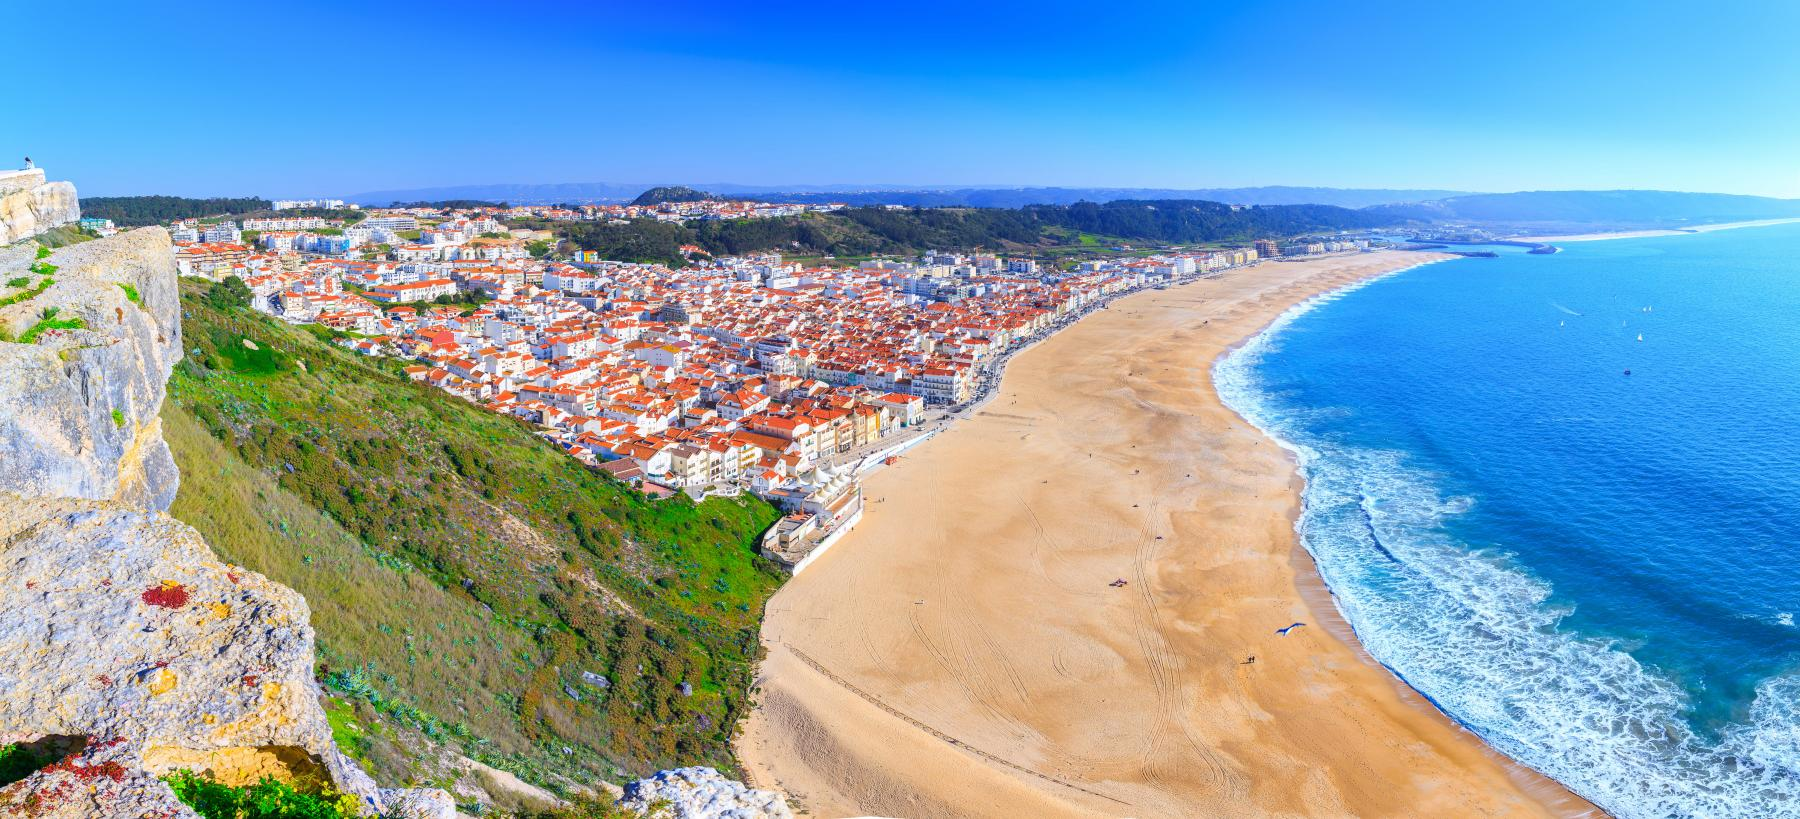 Most famous beach - Nazare